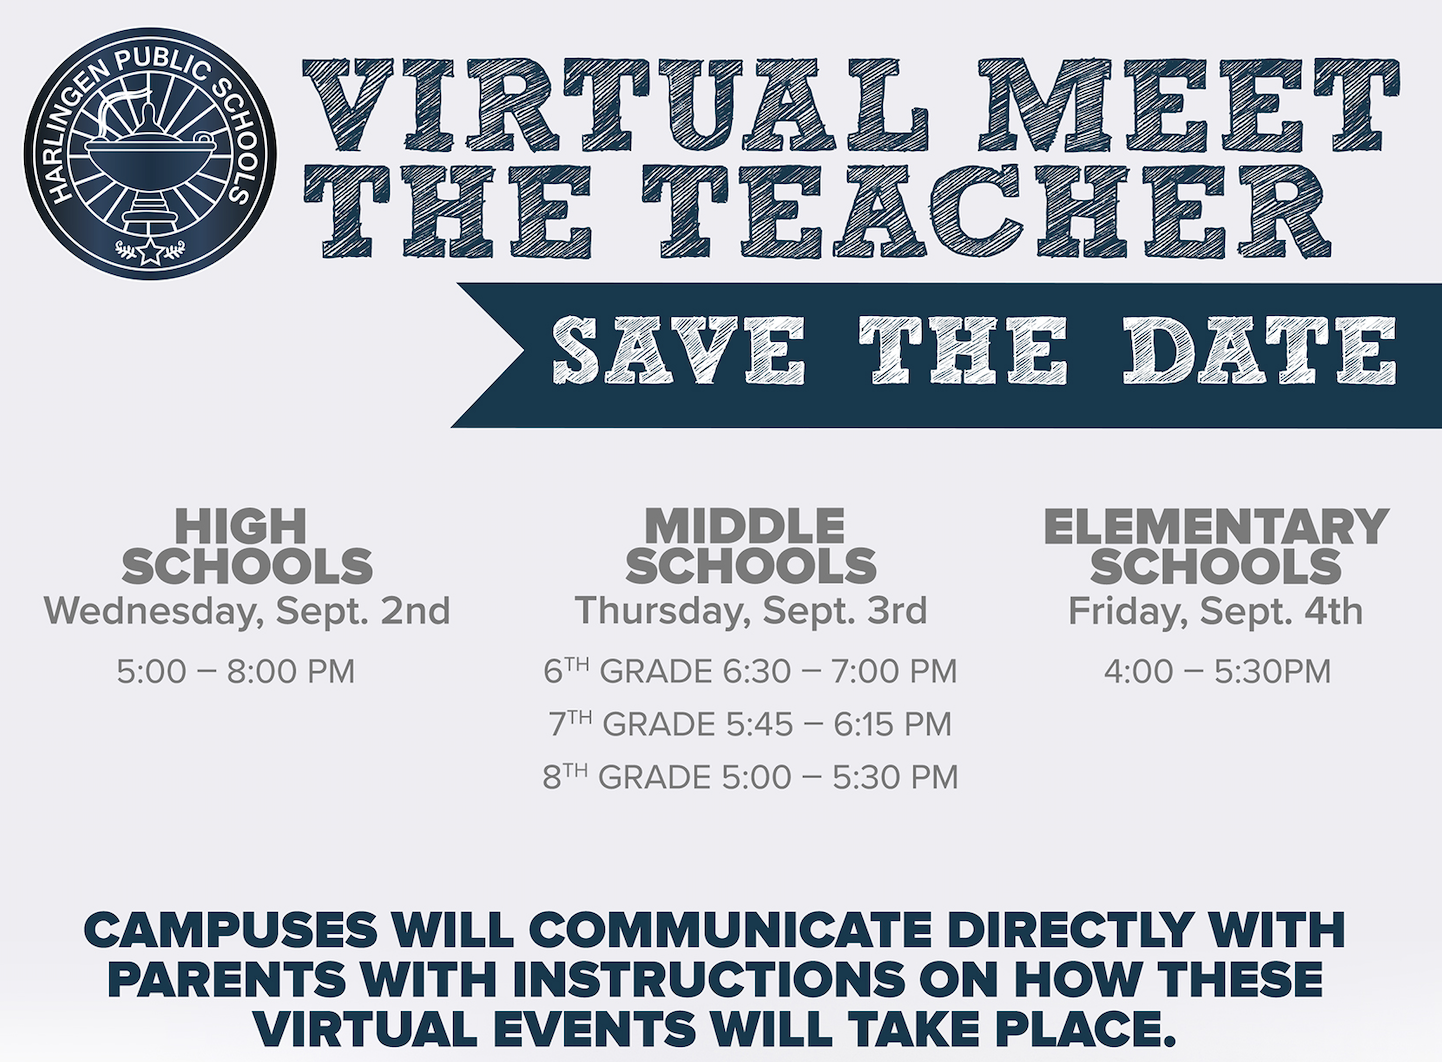 Meet the Teacher events will be held virtually